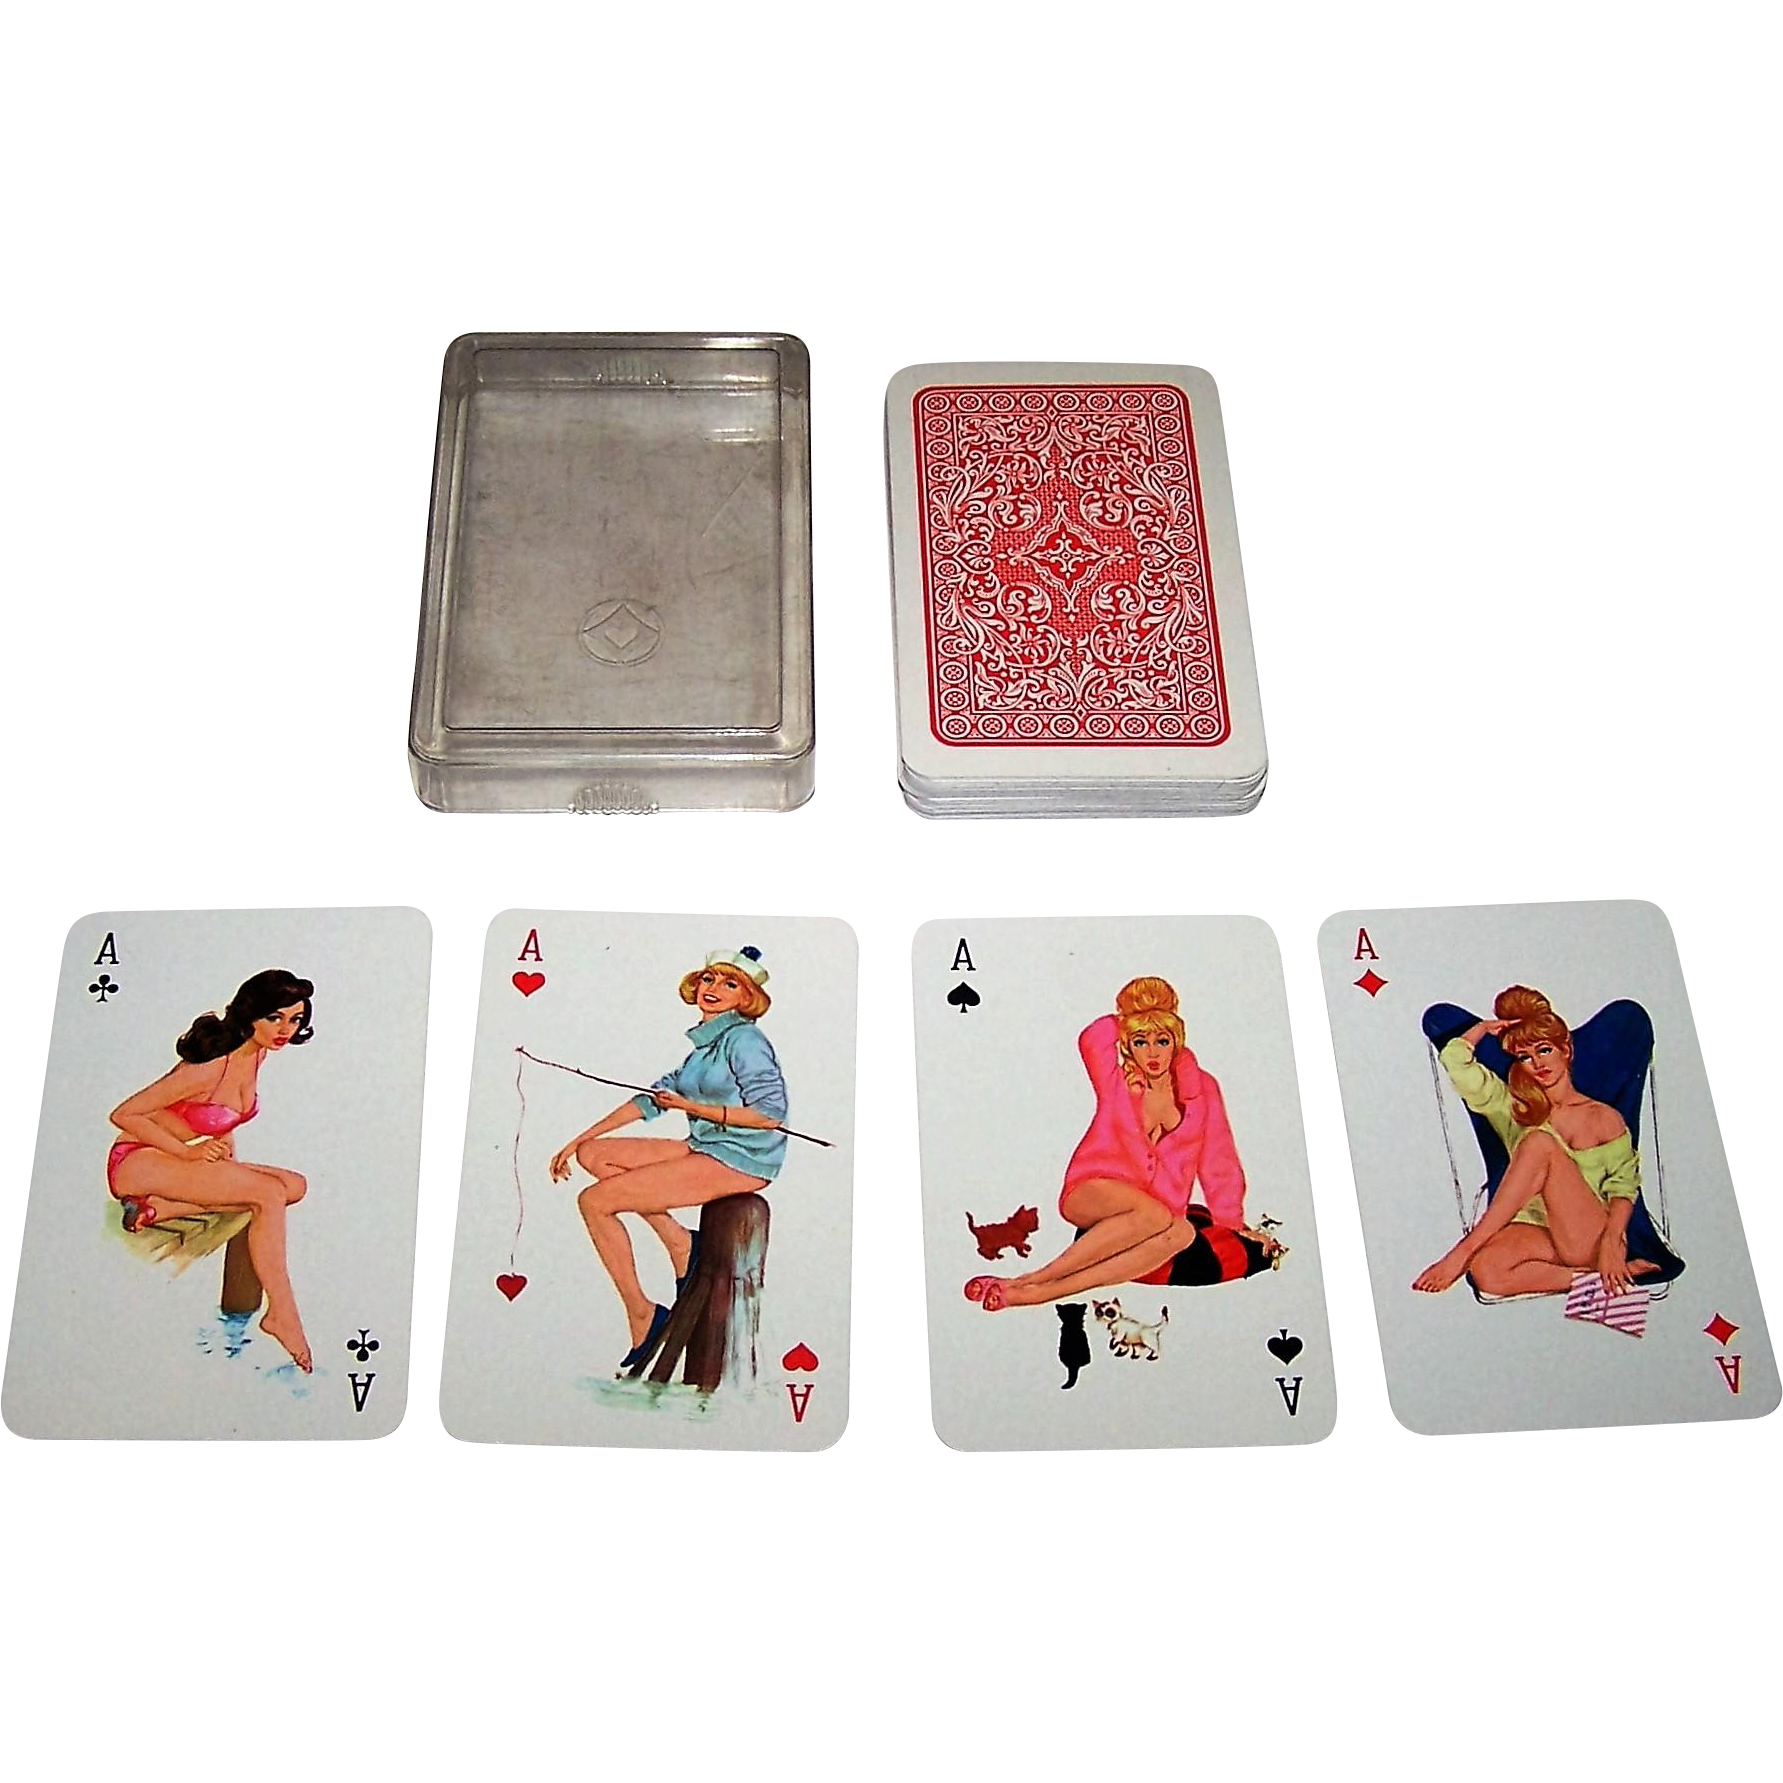 Fx Schmid Sexy Girls Jass Pin-Up Playing Cards, C1964 From Twoforhisheels On -2759